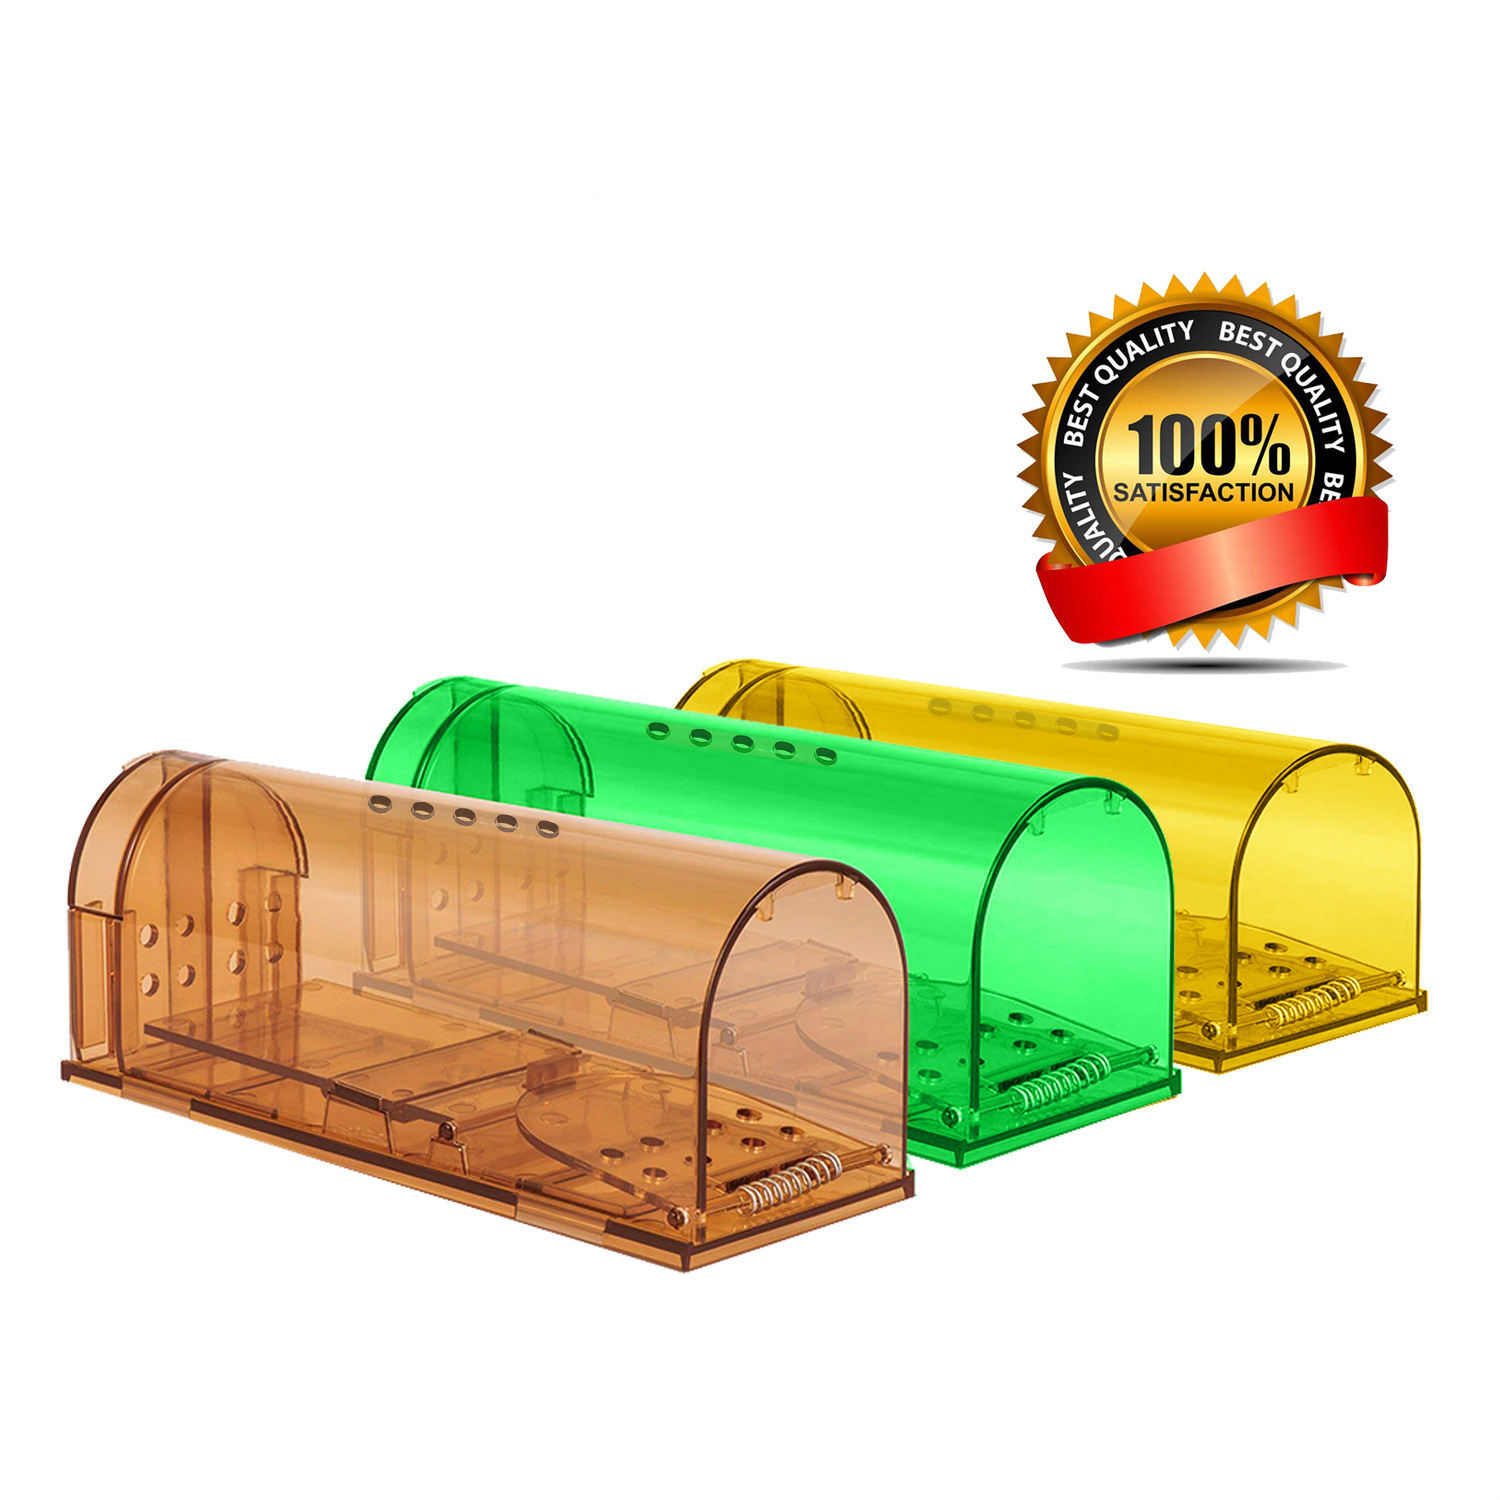 2020 Factory Supply Plastic Herbruikbare Live Mouse Trap Geen Doden Smart Automatische Muis Tap Humane Rat Trap Cage